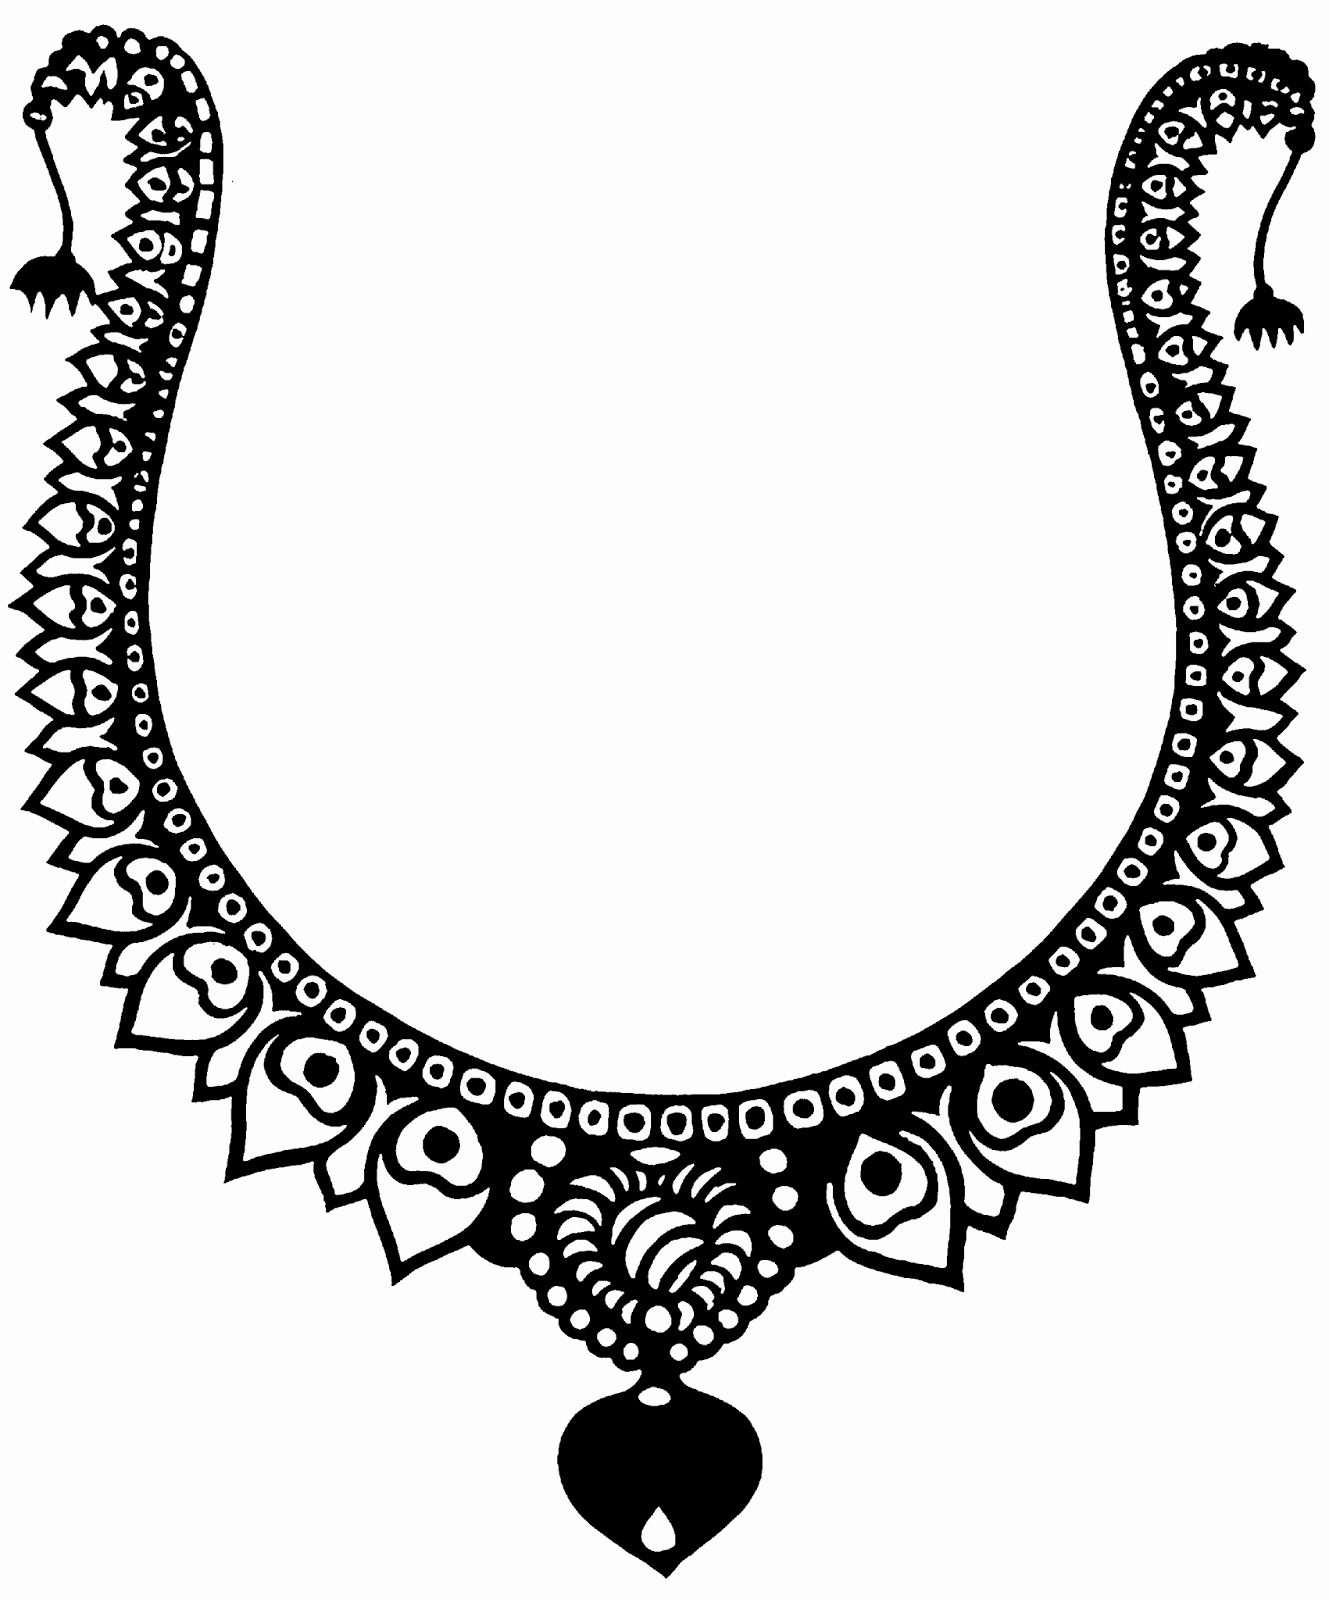 1569 Necklace free clipart.